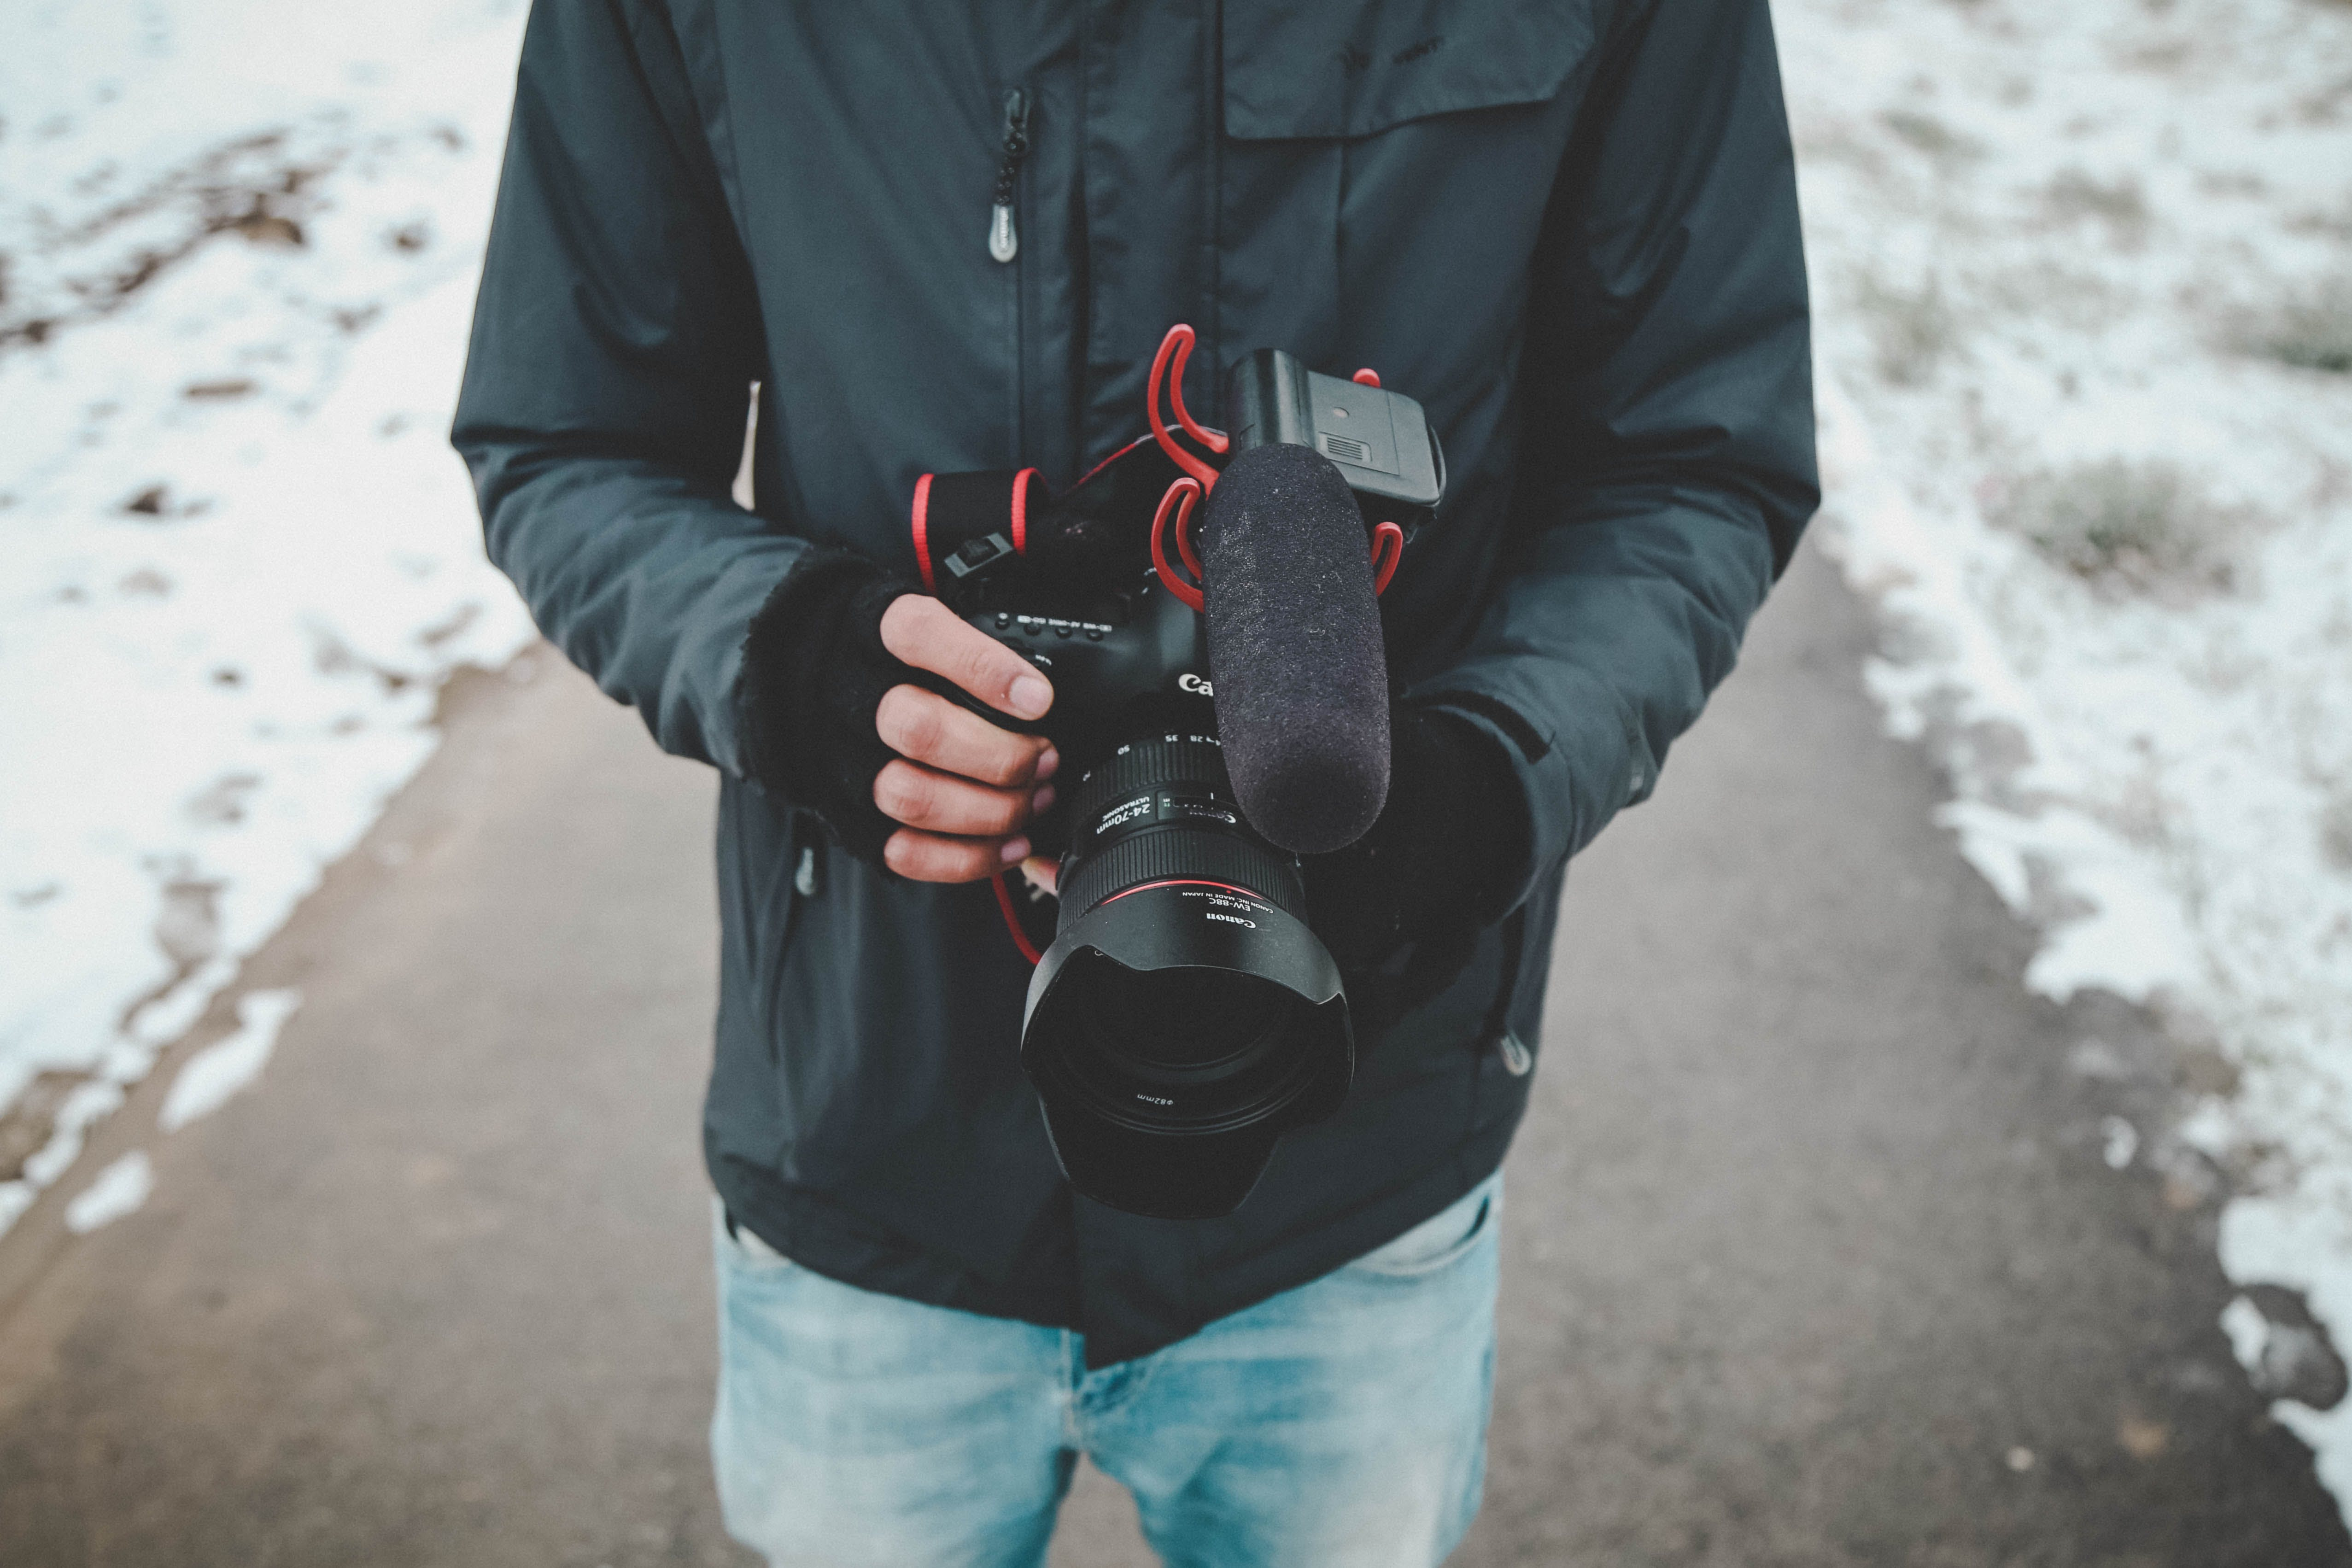 Man Holding Dslr Camera